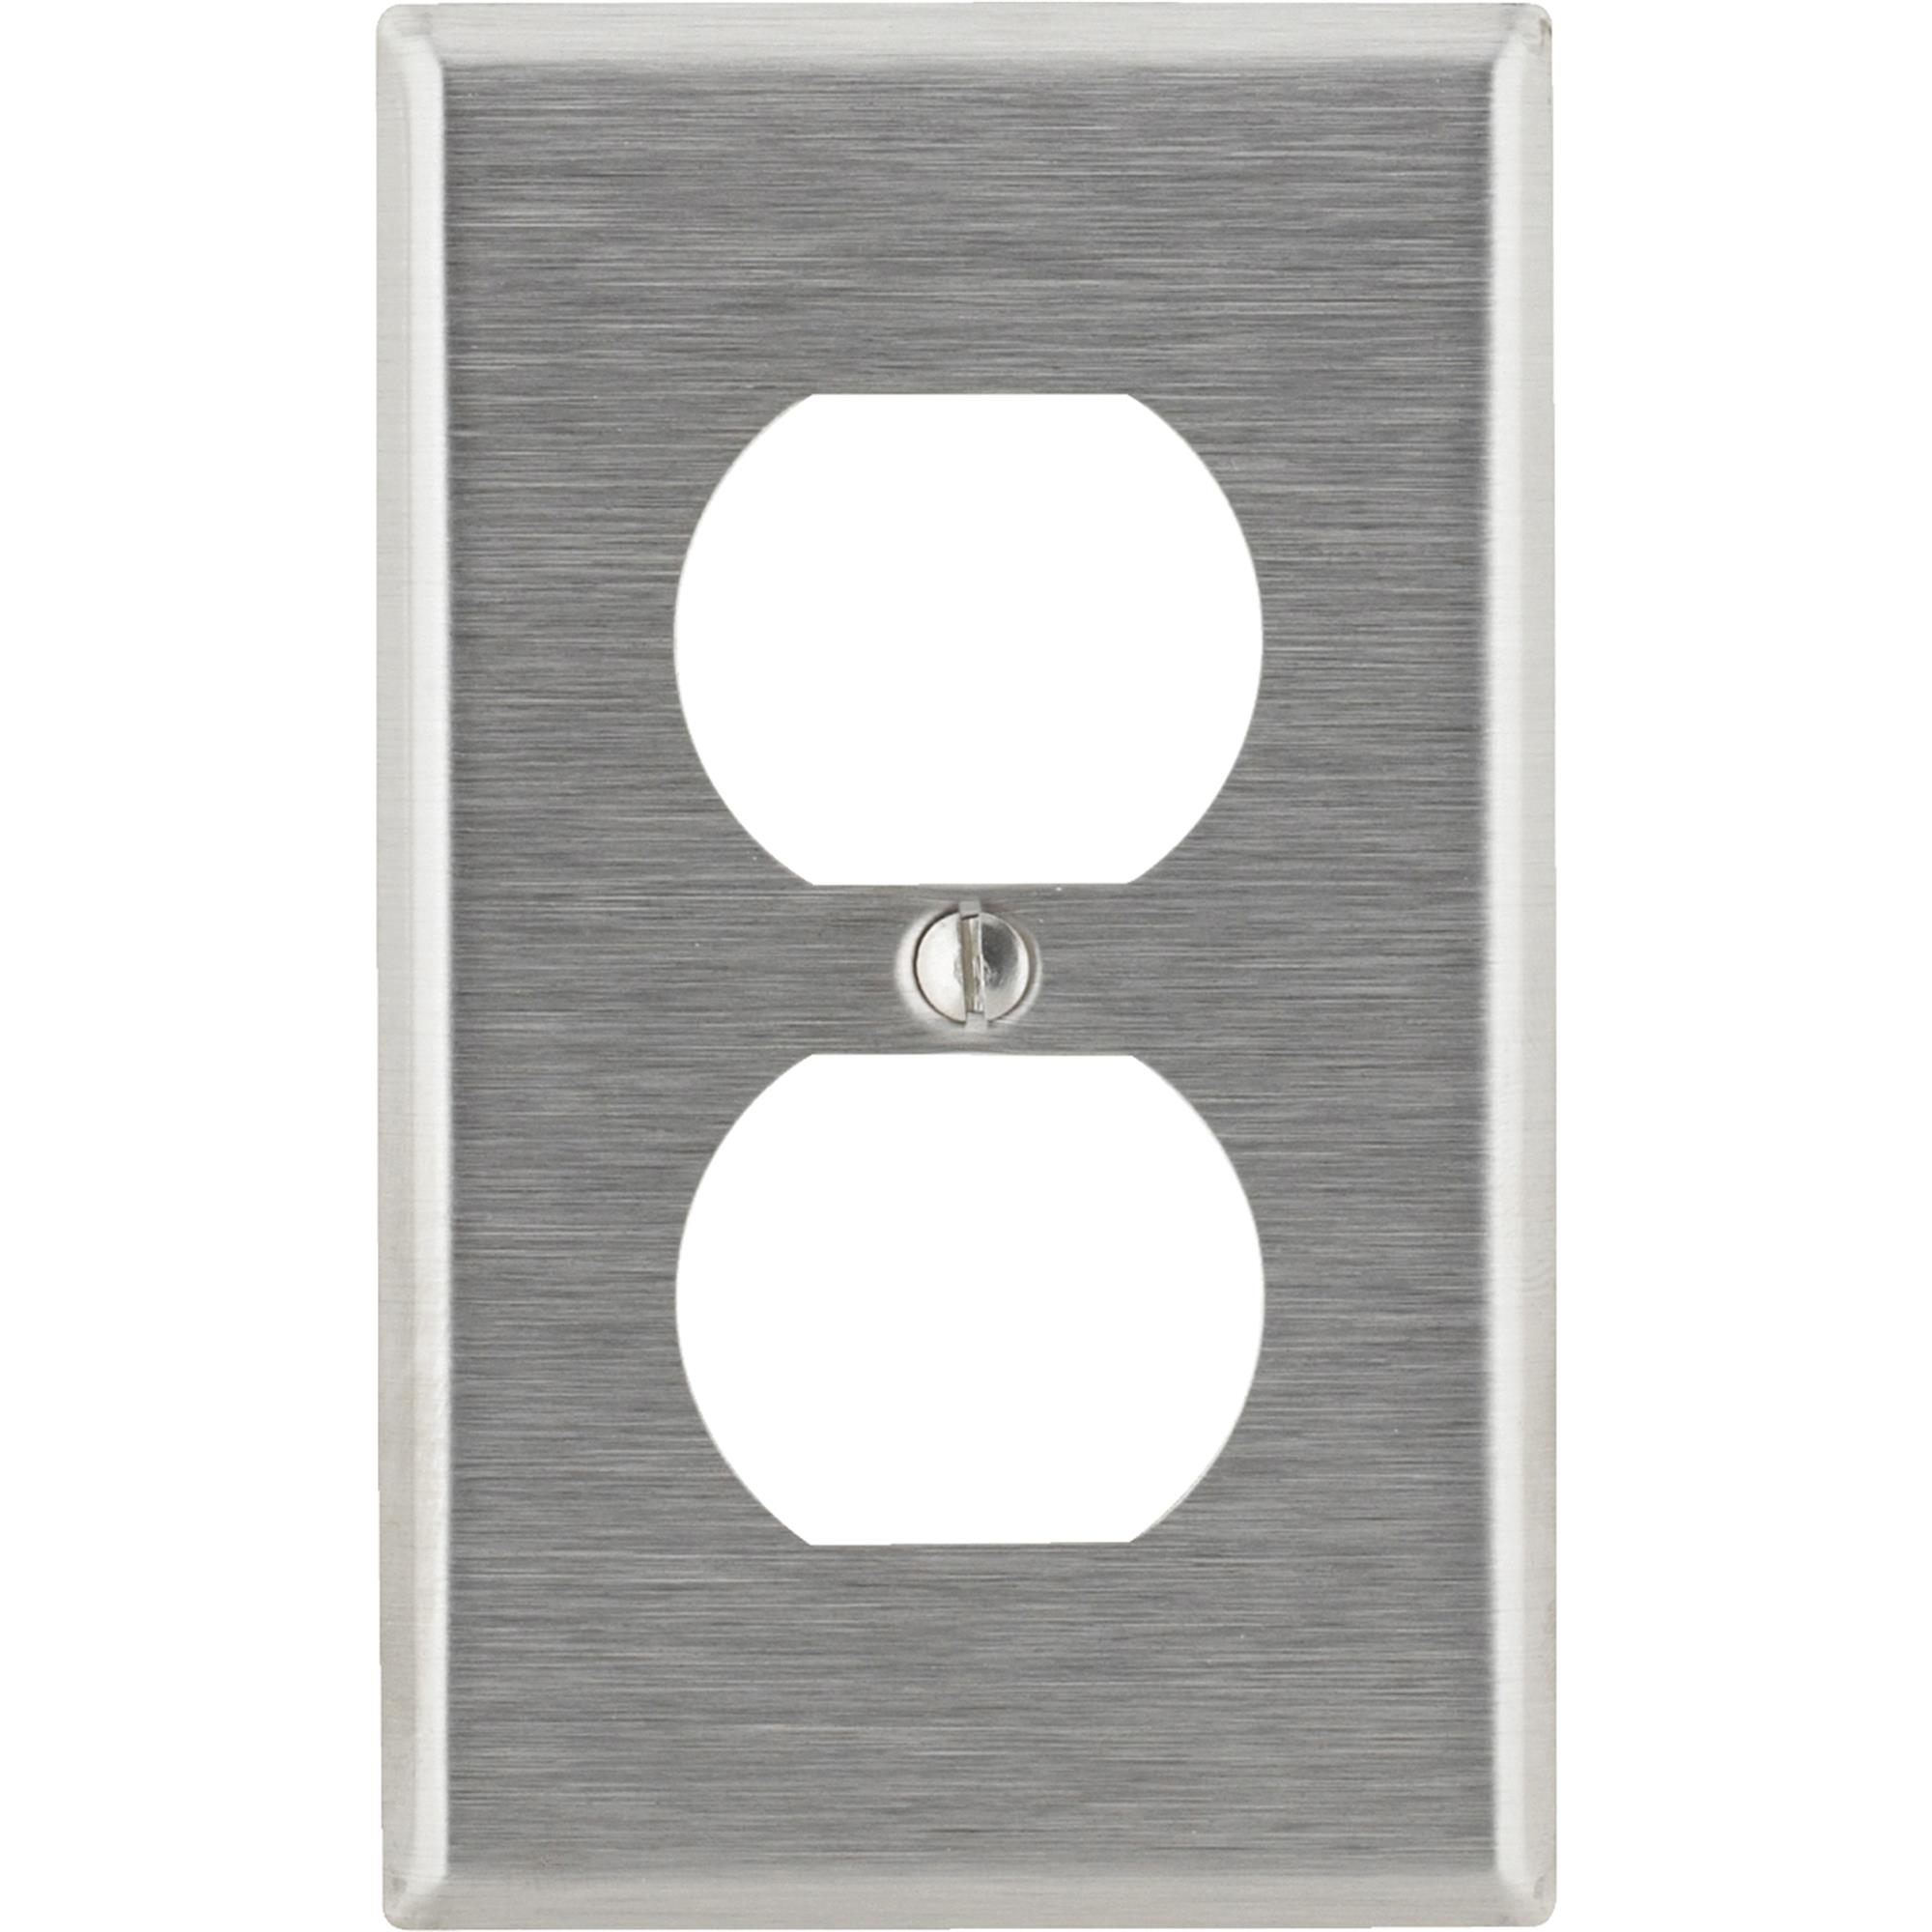 Leviton 84003 1-Gang Duplex Device Receptacle Wallplate, Standard Size, Device Mount, Stainless Steel